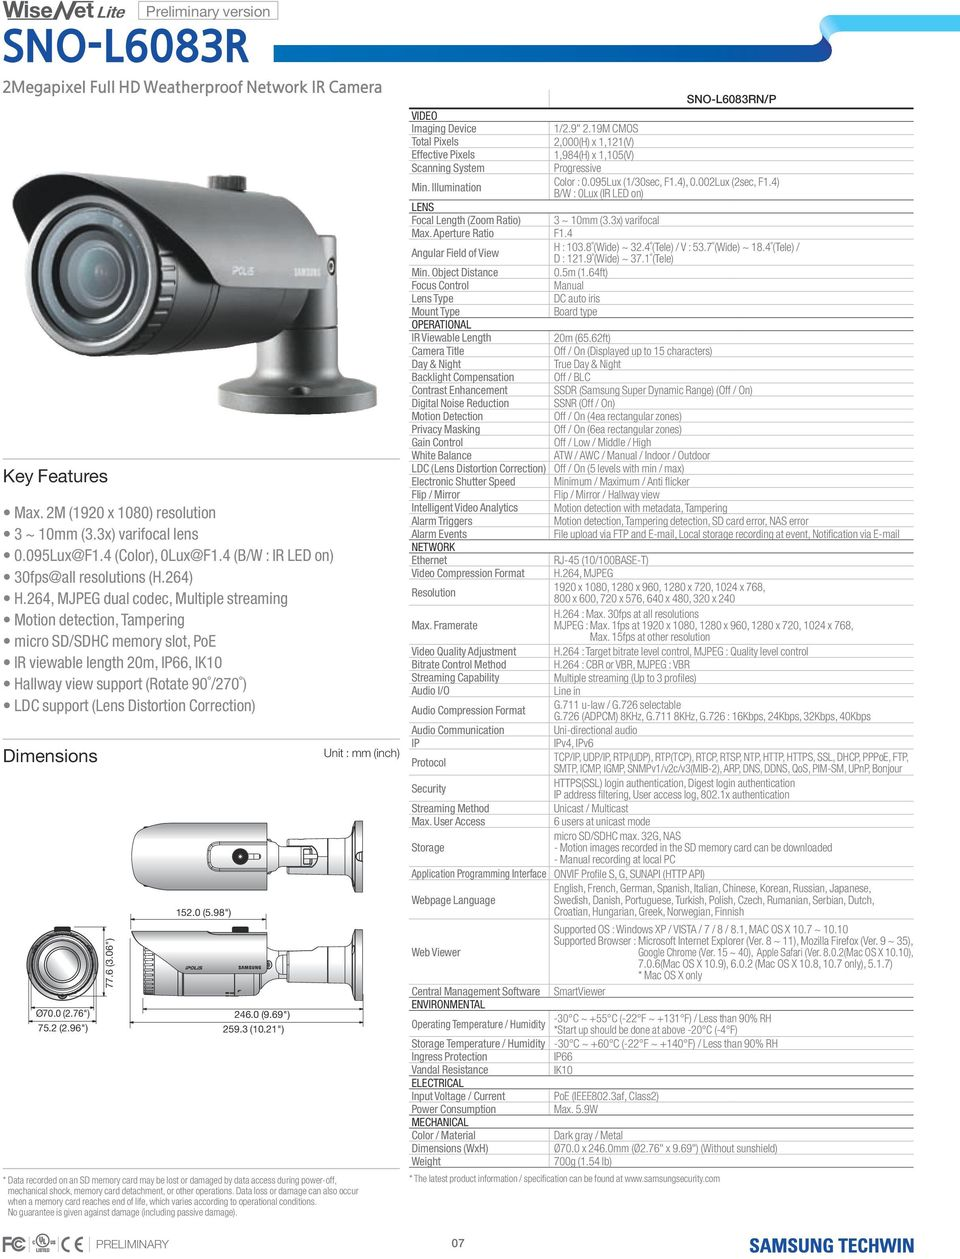 "21"") SNO-L6083RN/P 1/2.9"" 2.19M CMOS 2,000(H) x 1,121(V) 1,984(H) x 1,105(V) Color : 0.095Lux (1/30sec, F1.4), 0.002Lux (2sec, F1.4) Focal Length (Zoom Ratio) 3 ~ 10mm (3.3x) varifocal Max."